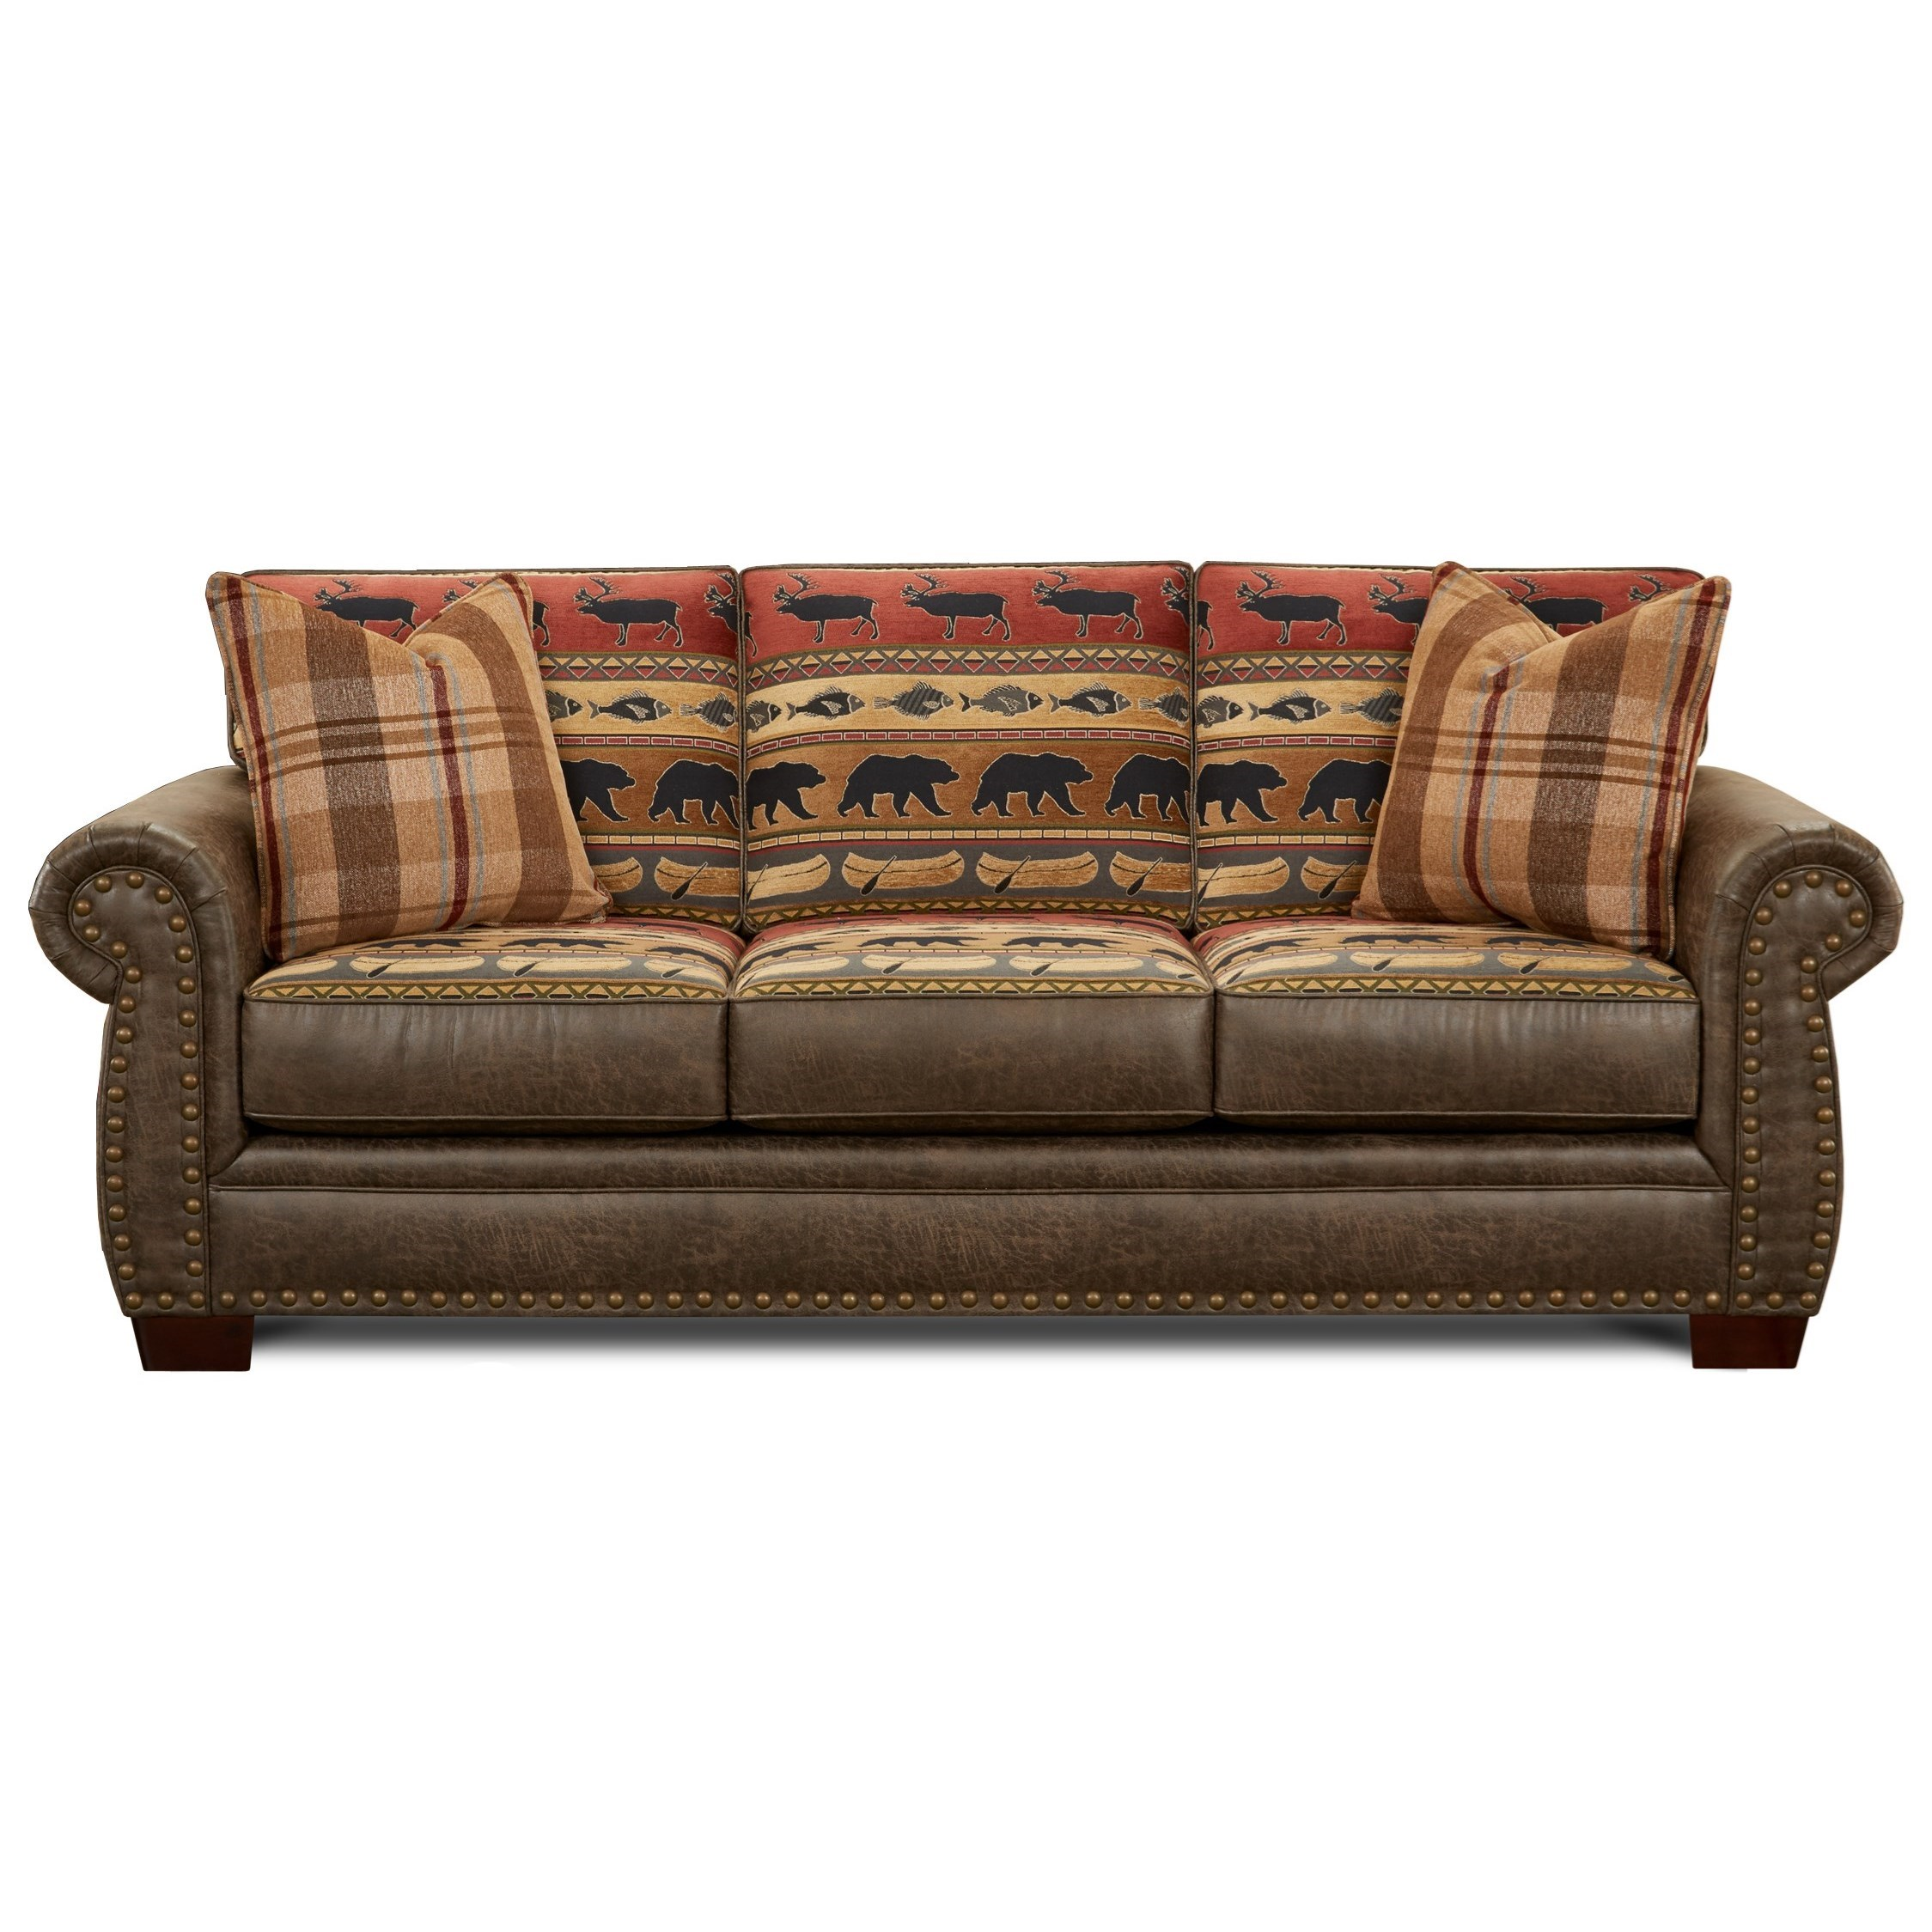 22-00 Sofa by Fusion Furniture at Prime Brothers Furniture